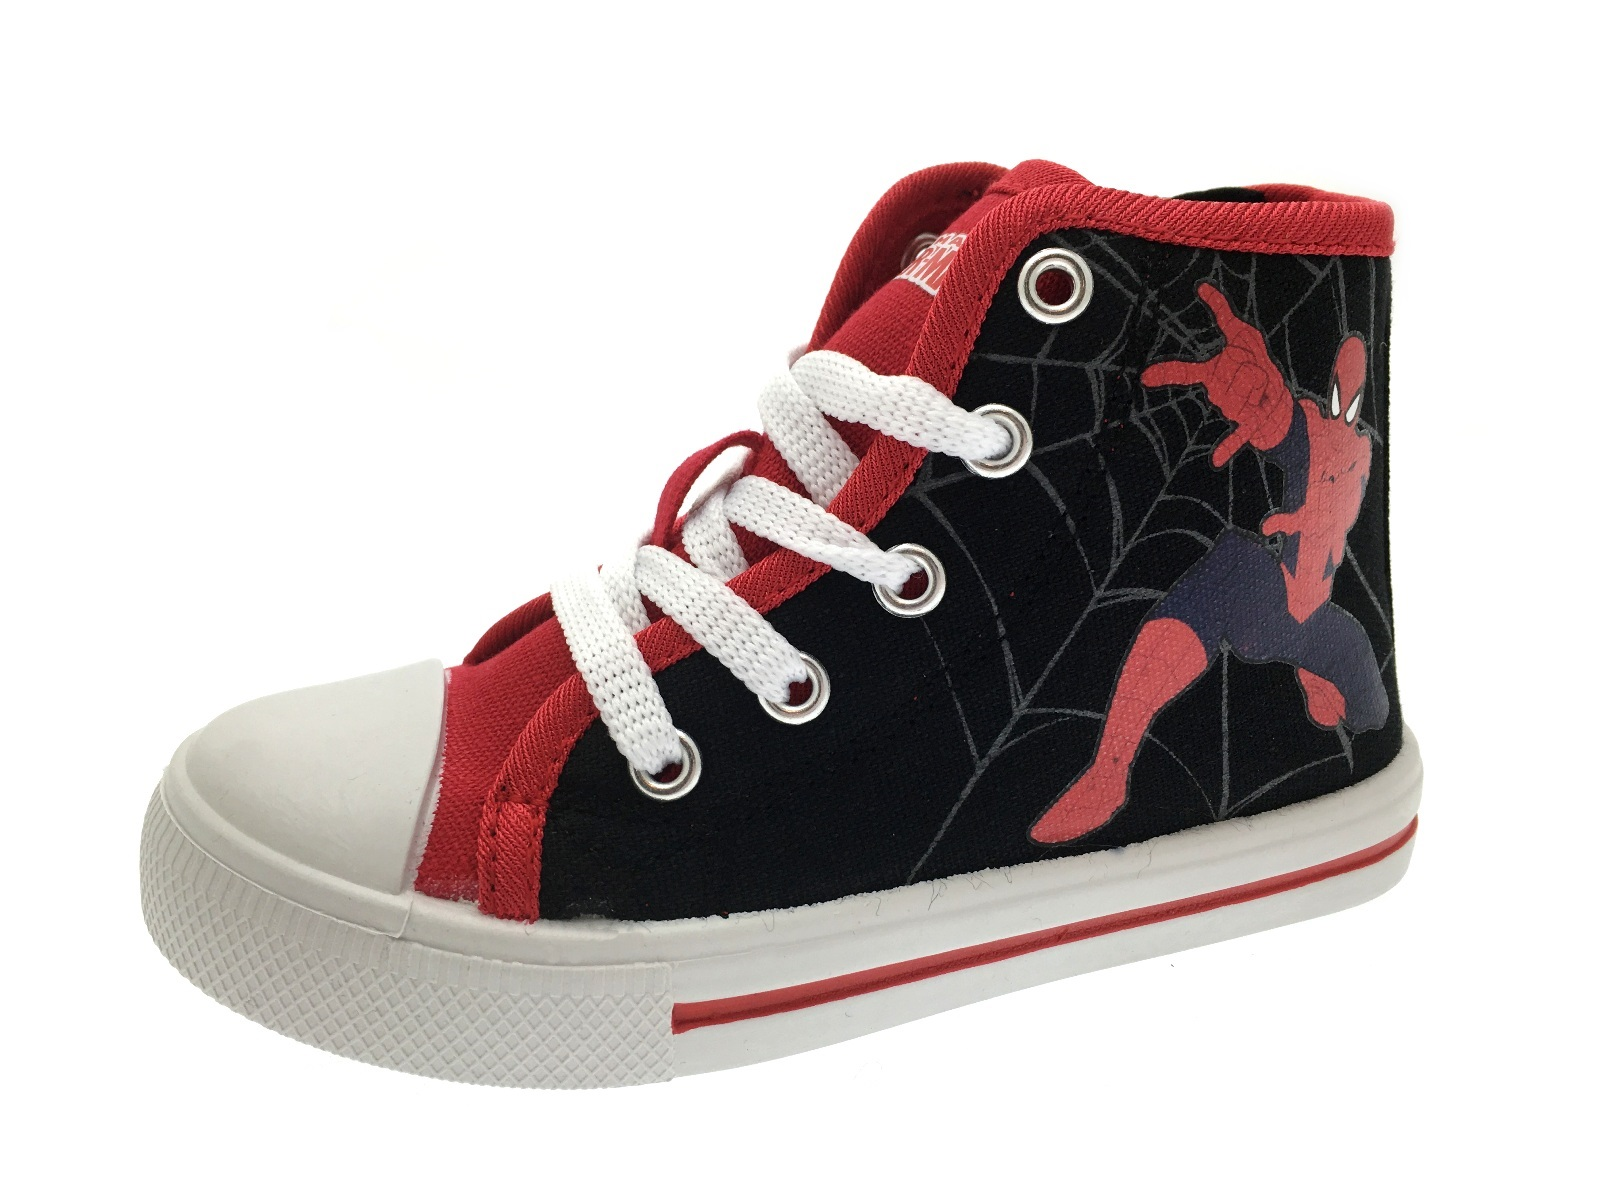 Boys fashion shoes uk 3